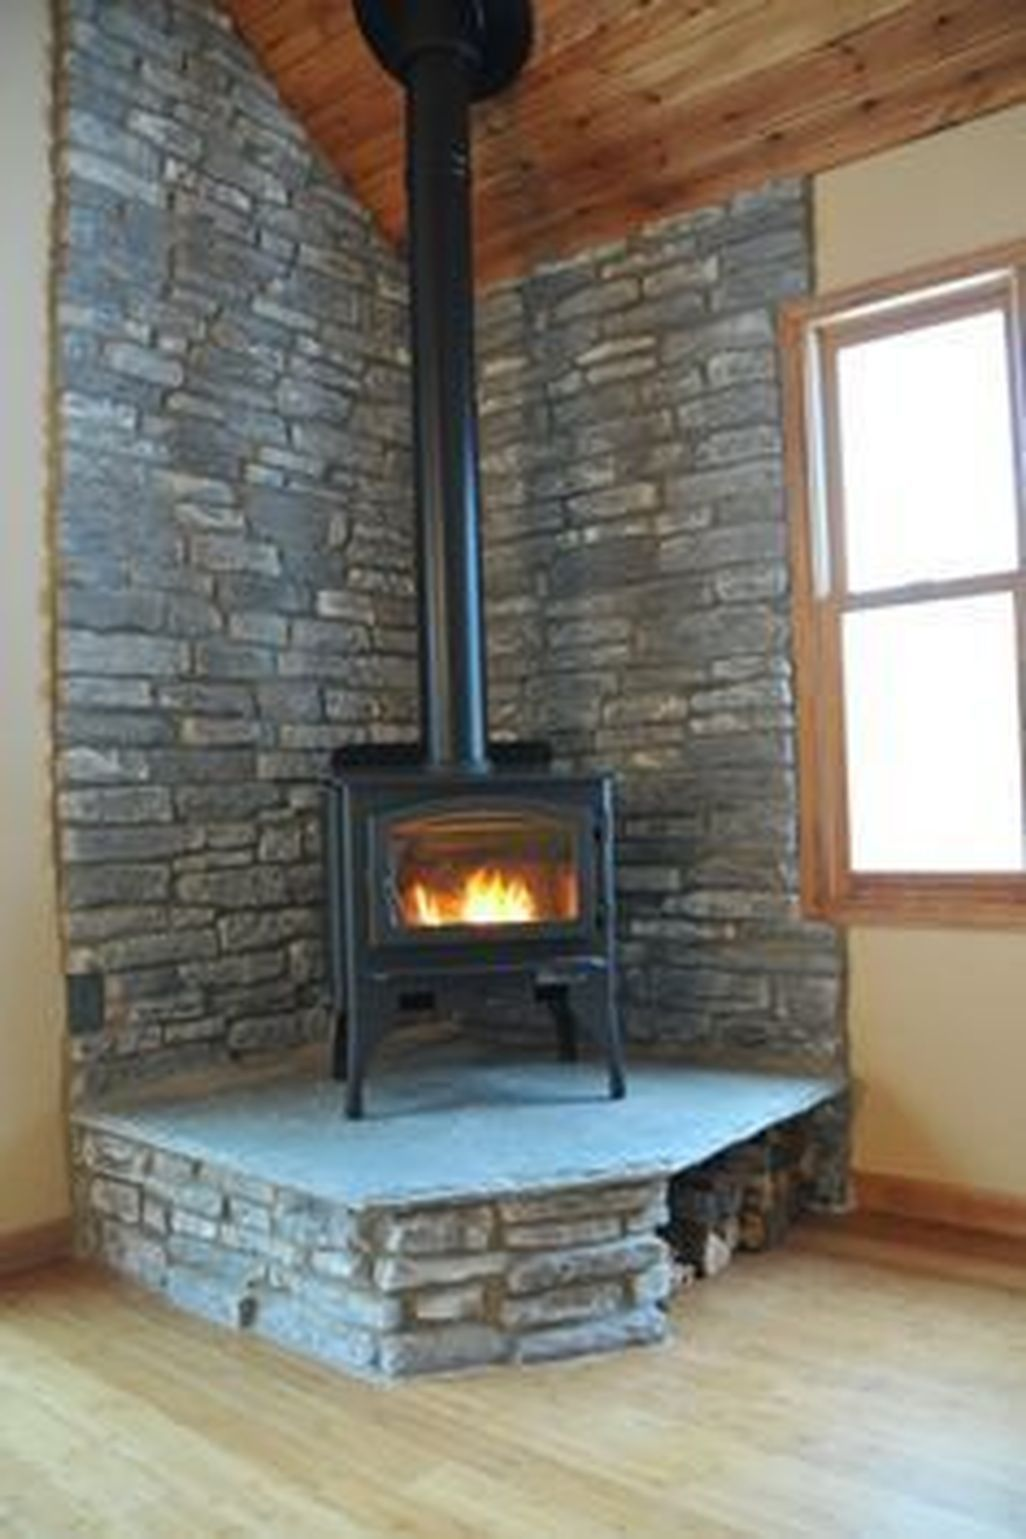 Nice 41 Inspiring Corner Fireplace Ideas In The Living Room More At Http Zyhomy Com 2018 09 06 Wood Burning Stove Corner Corner Wood Stove Wood Stove Hearth